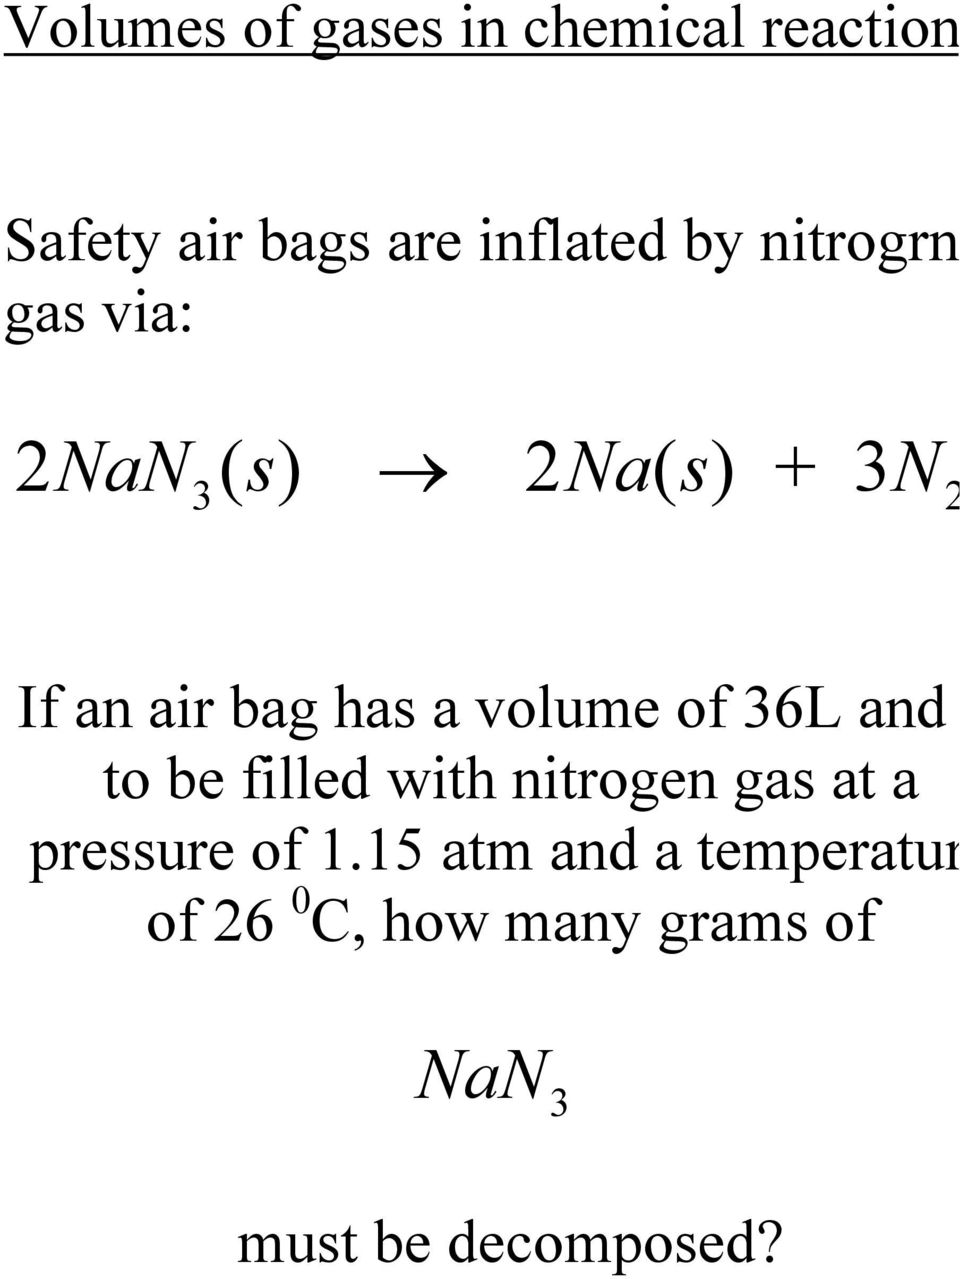 volume of 36L and to be filled with nitrogen gas at a pressure of 1.